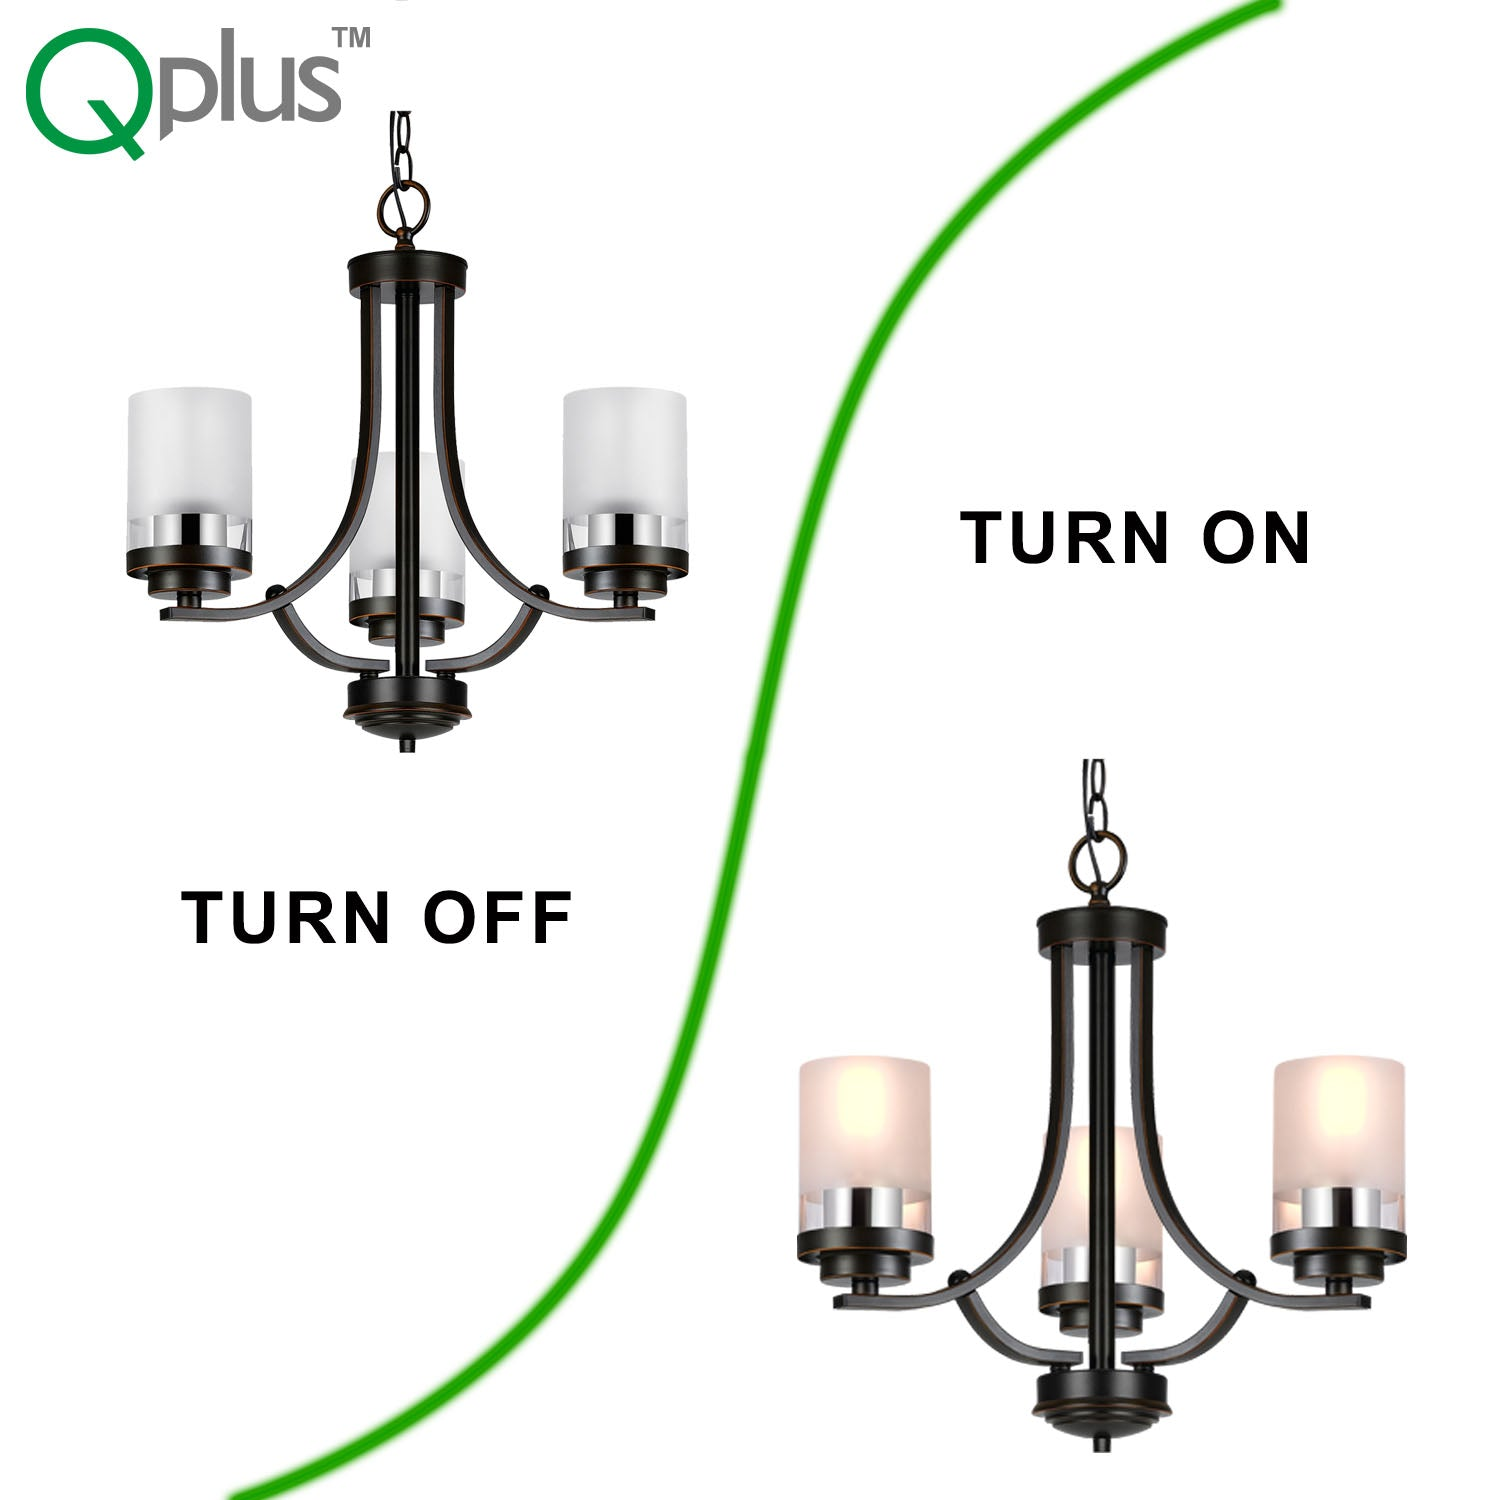 QPlus 3 Light Tulip Chandelier Pendant Lamp with E26 Bulb base & Clear, Frosted Glass Shades - Brushed Nickel / Bronze + 3 A21 LED Bulbs Free